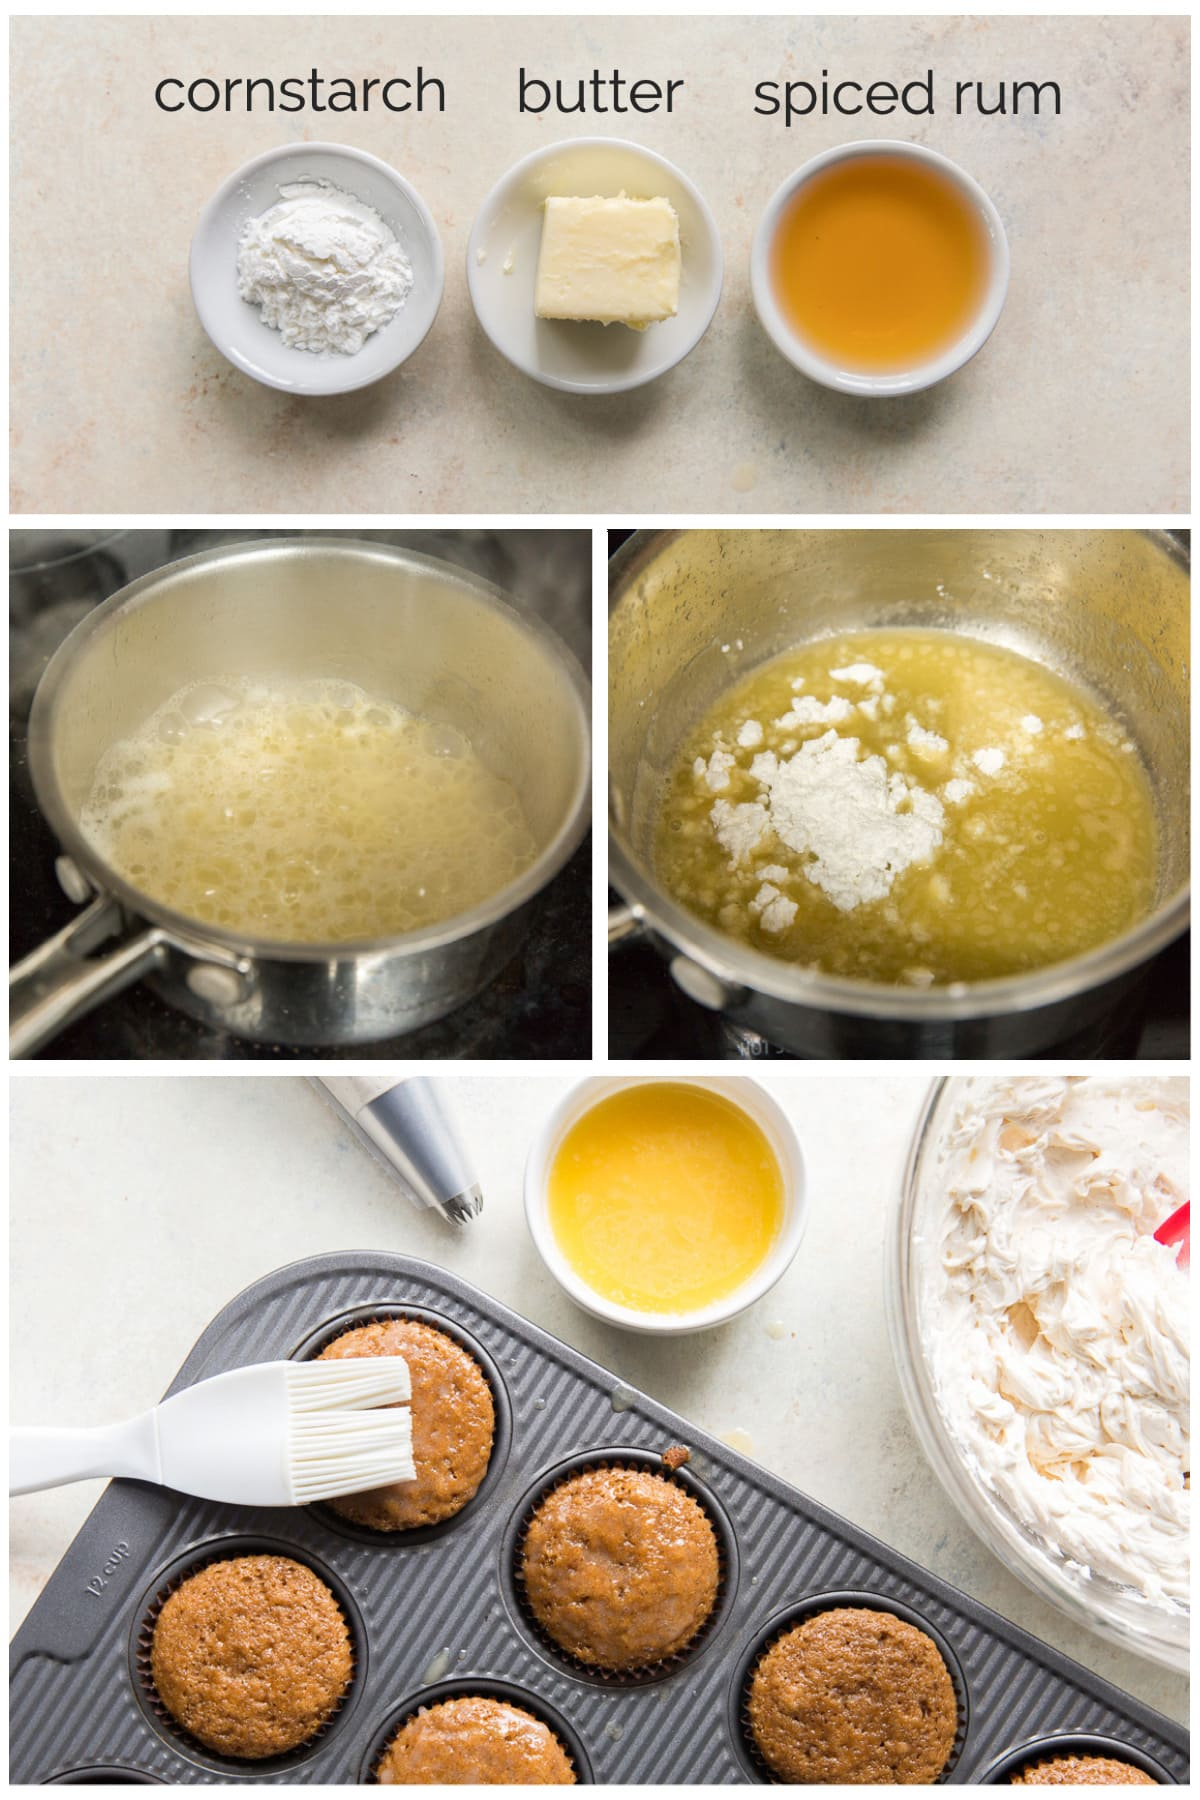 photo collage demonstrating how to make buttered rum syrup